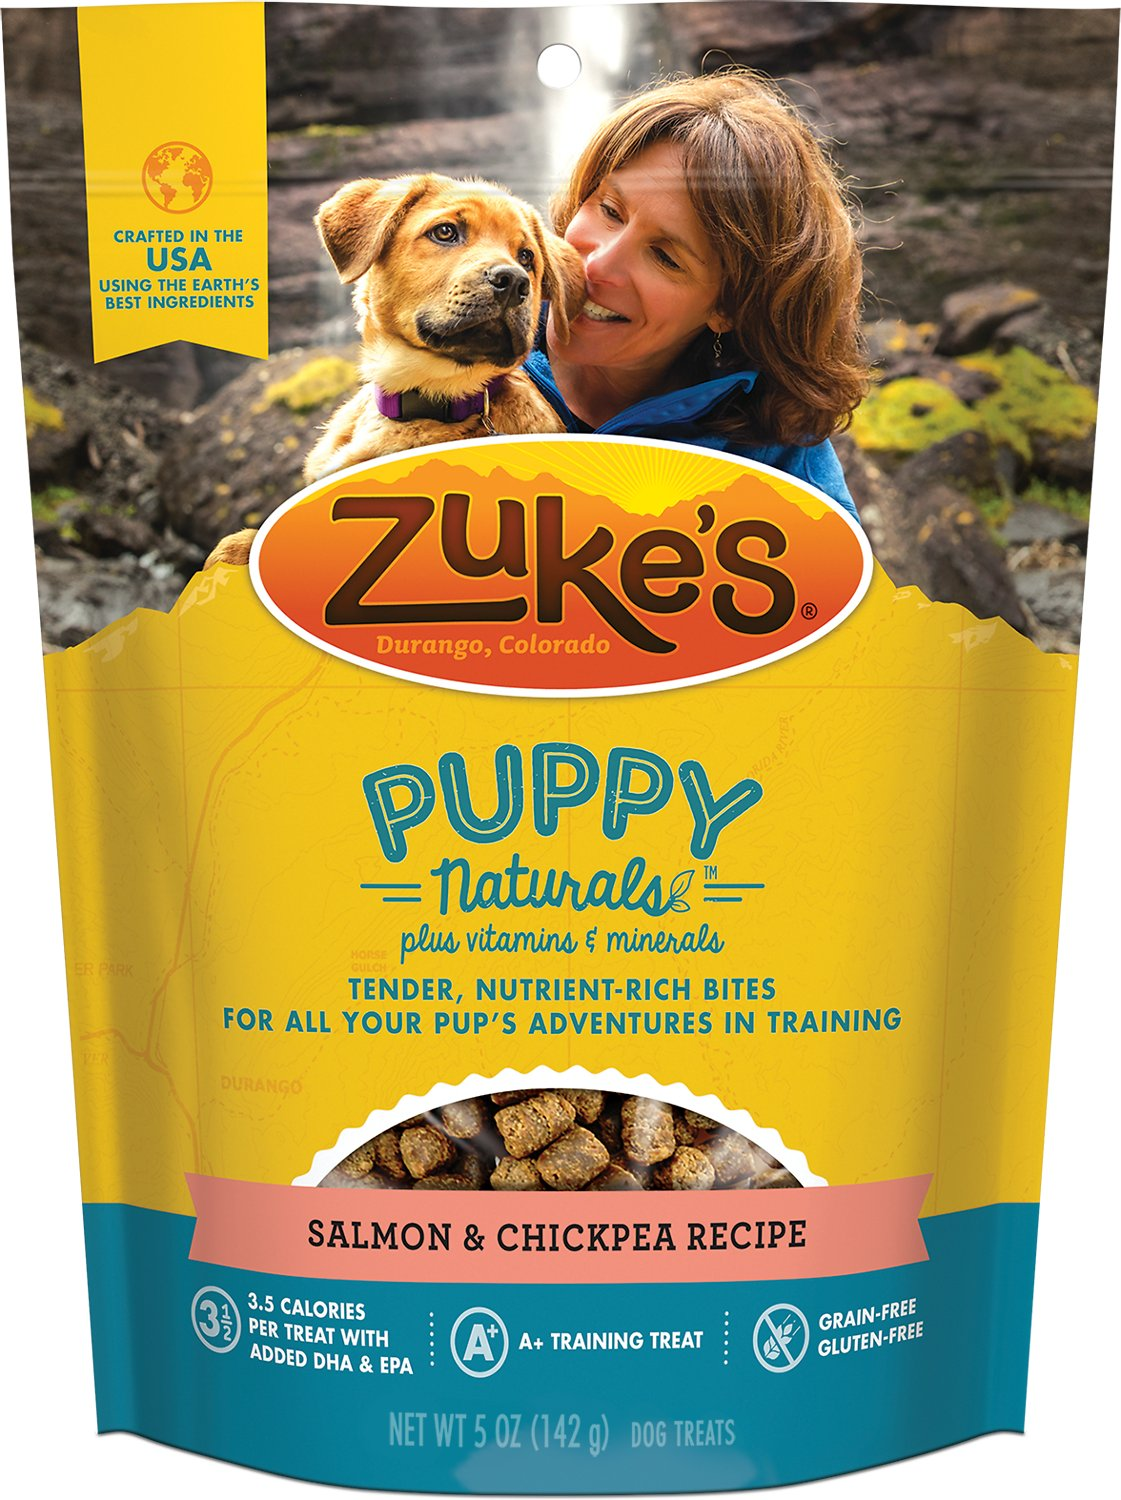 Zuke's Puppy Naturals Salmon & Chickpea Recipe Dog Treats, 5-oz bag (Weights: 5 ounces) Image